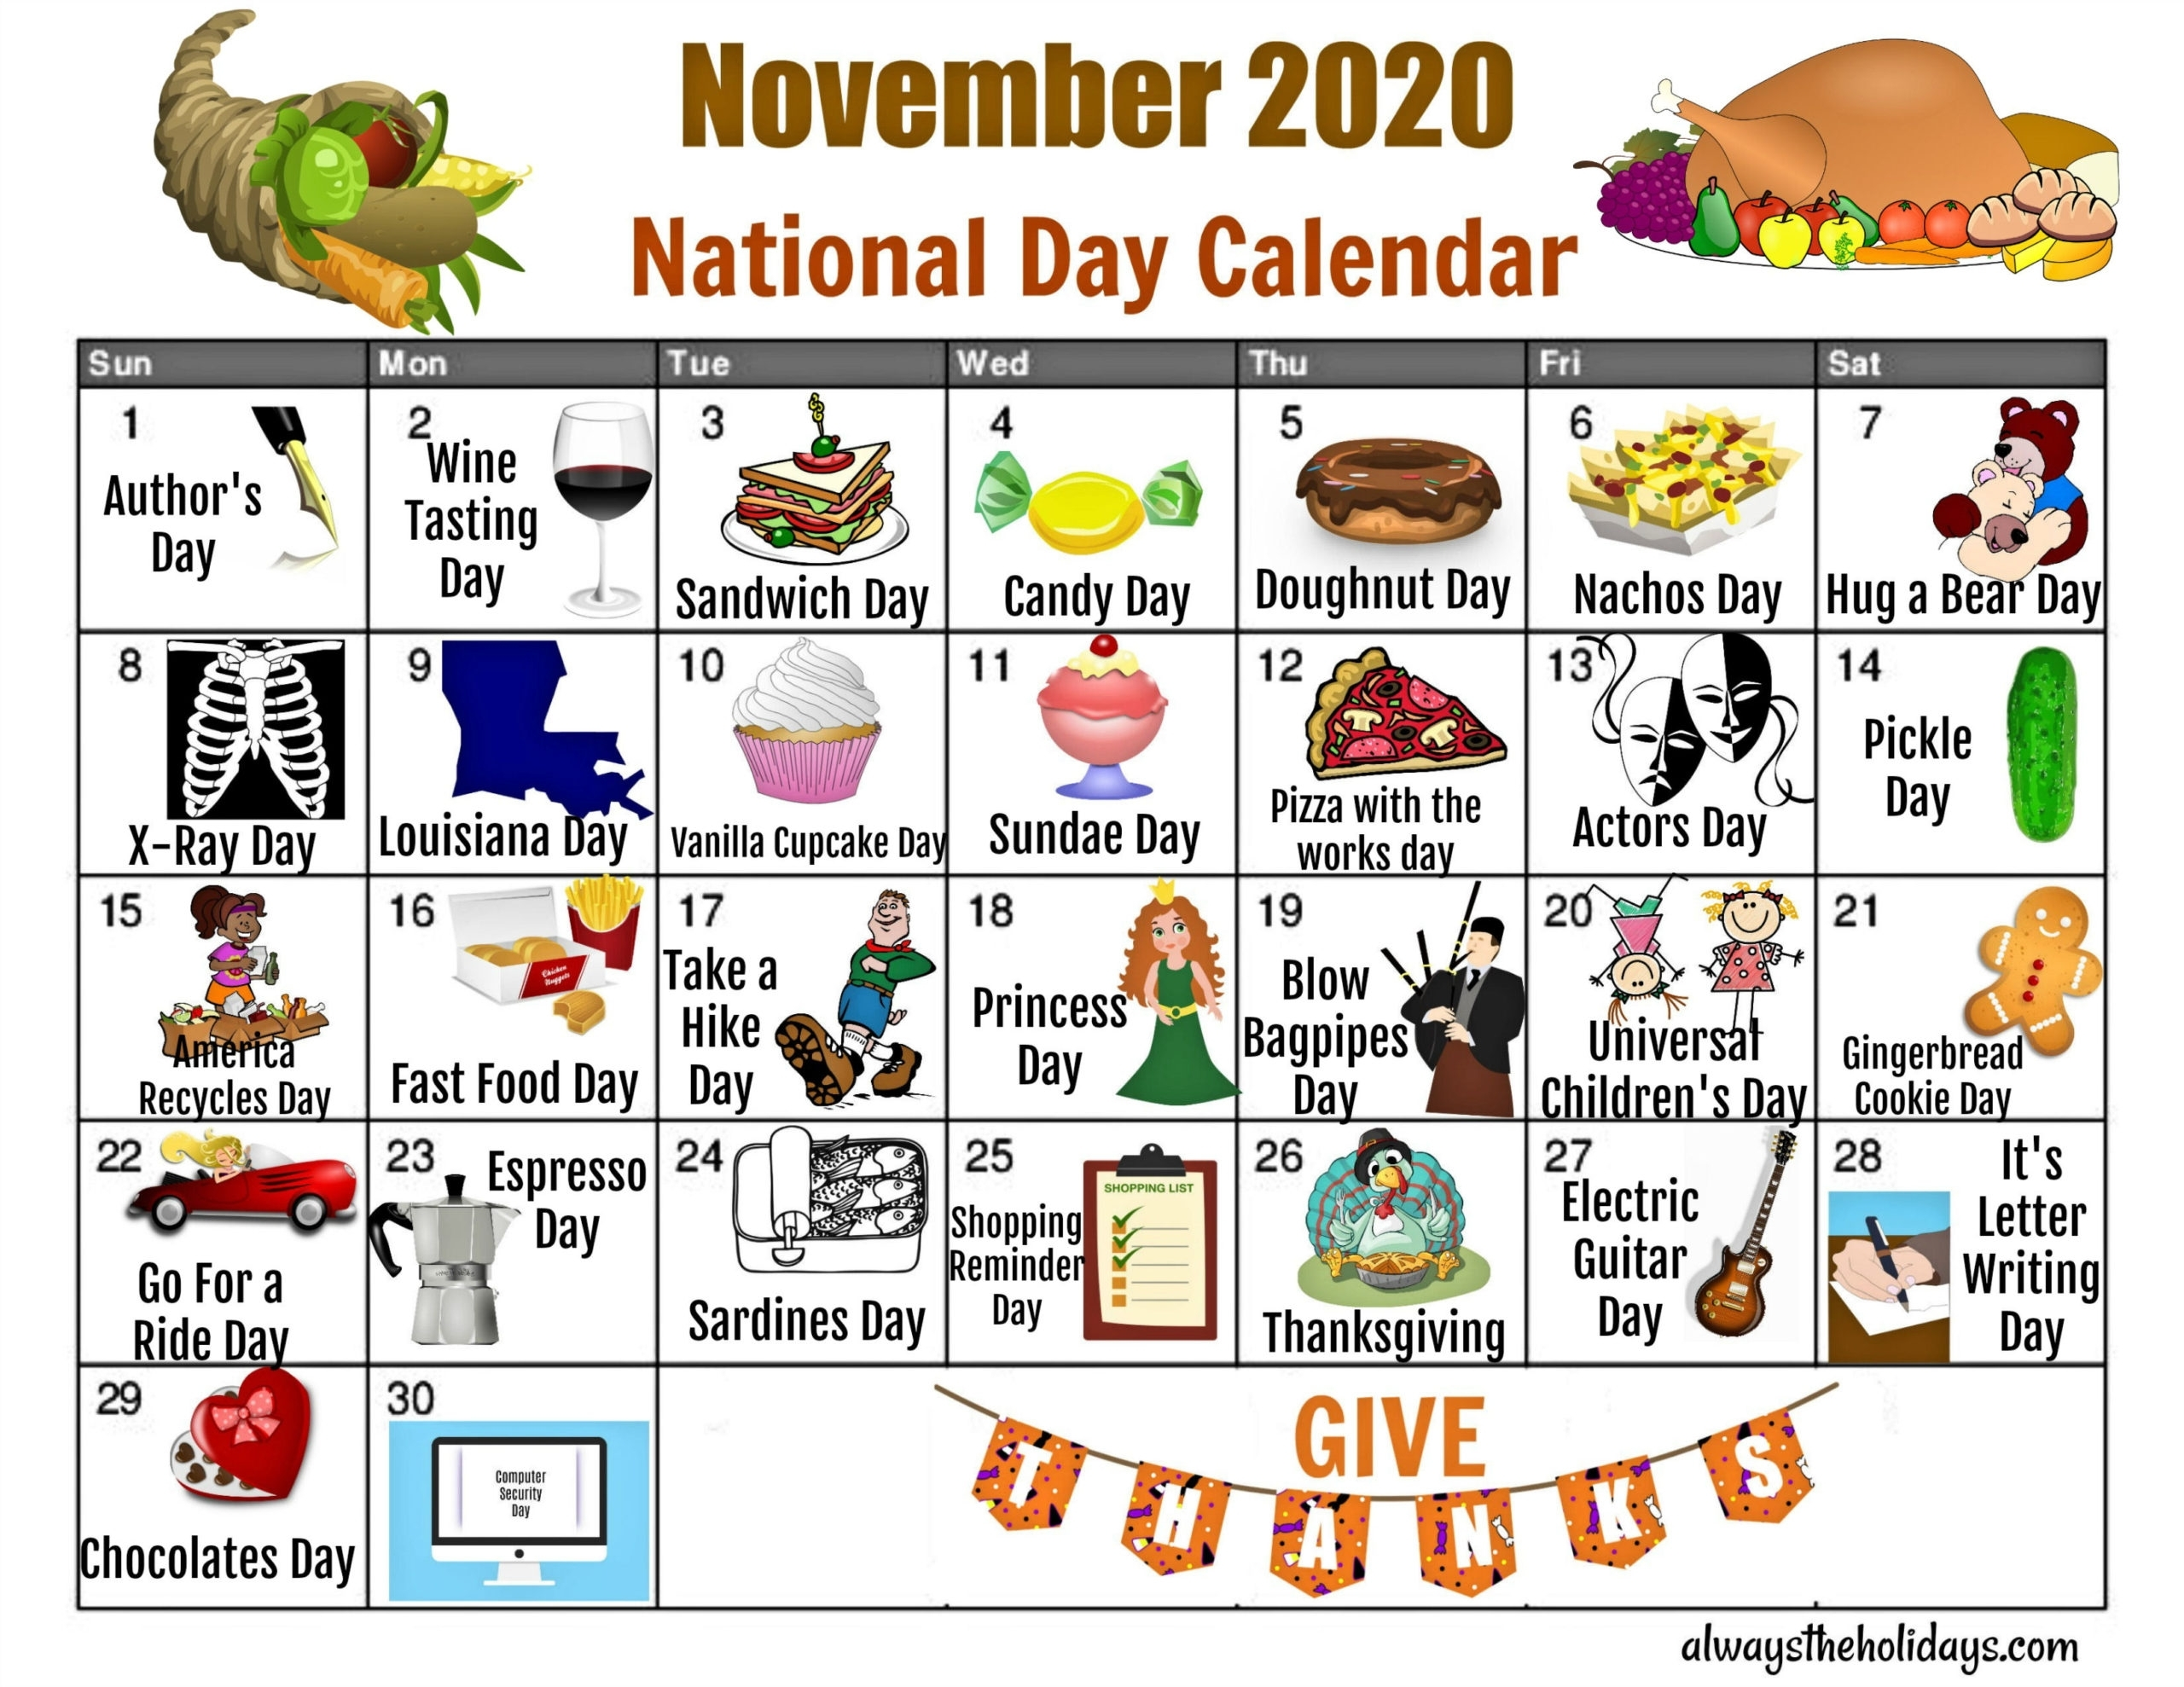 Get National Day Calendar 2021 Printable List